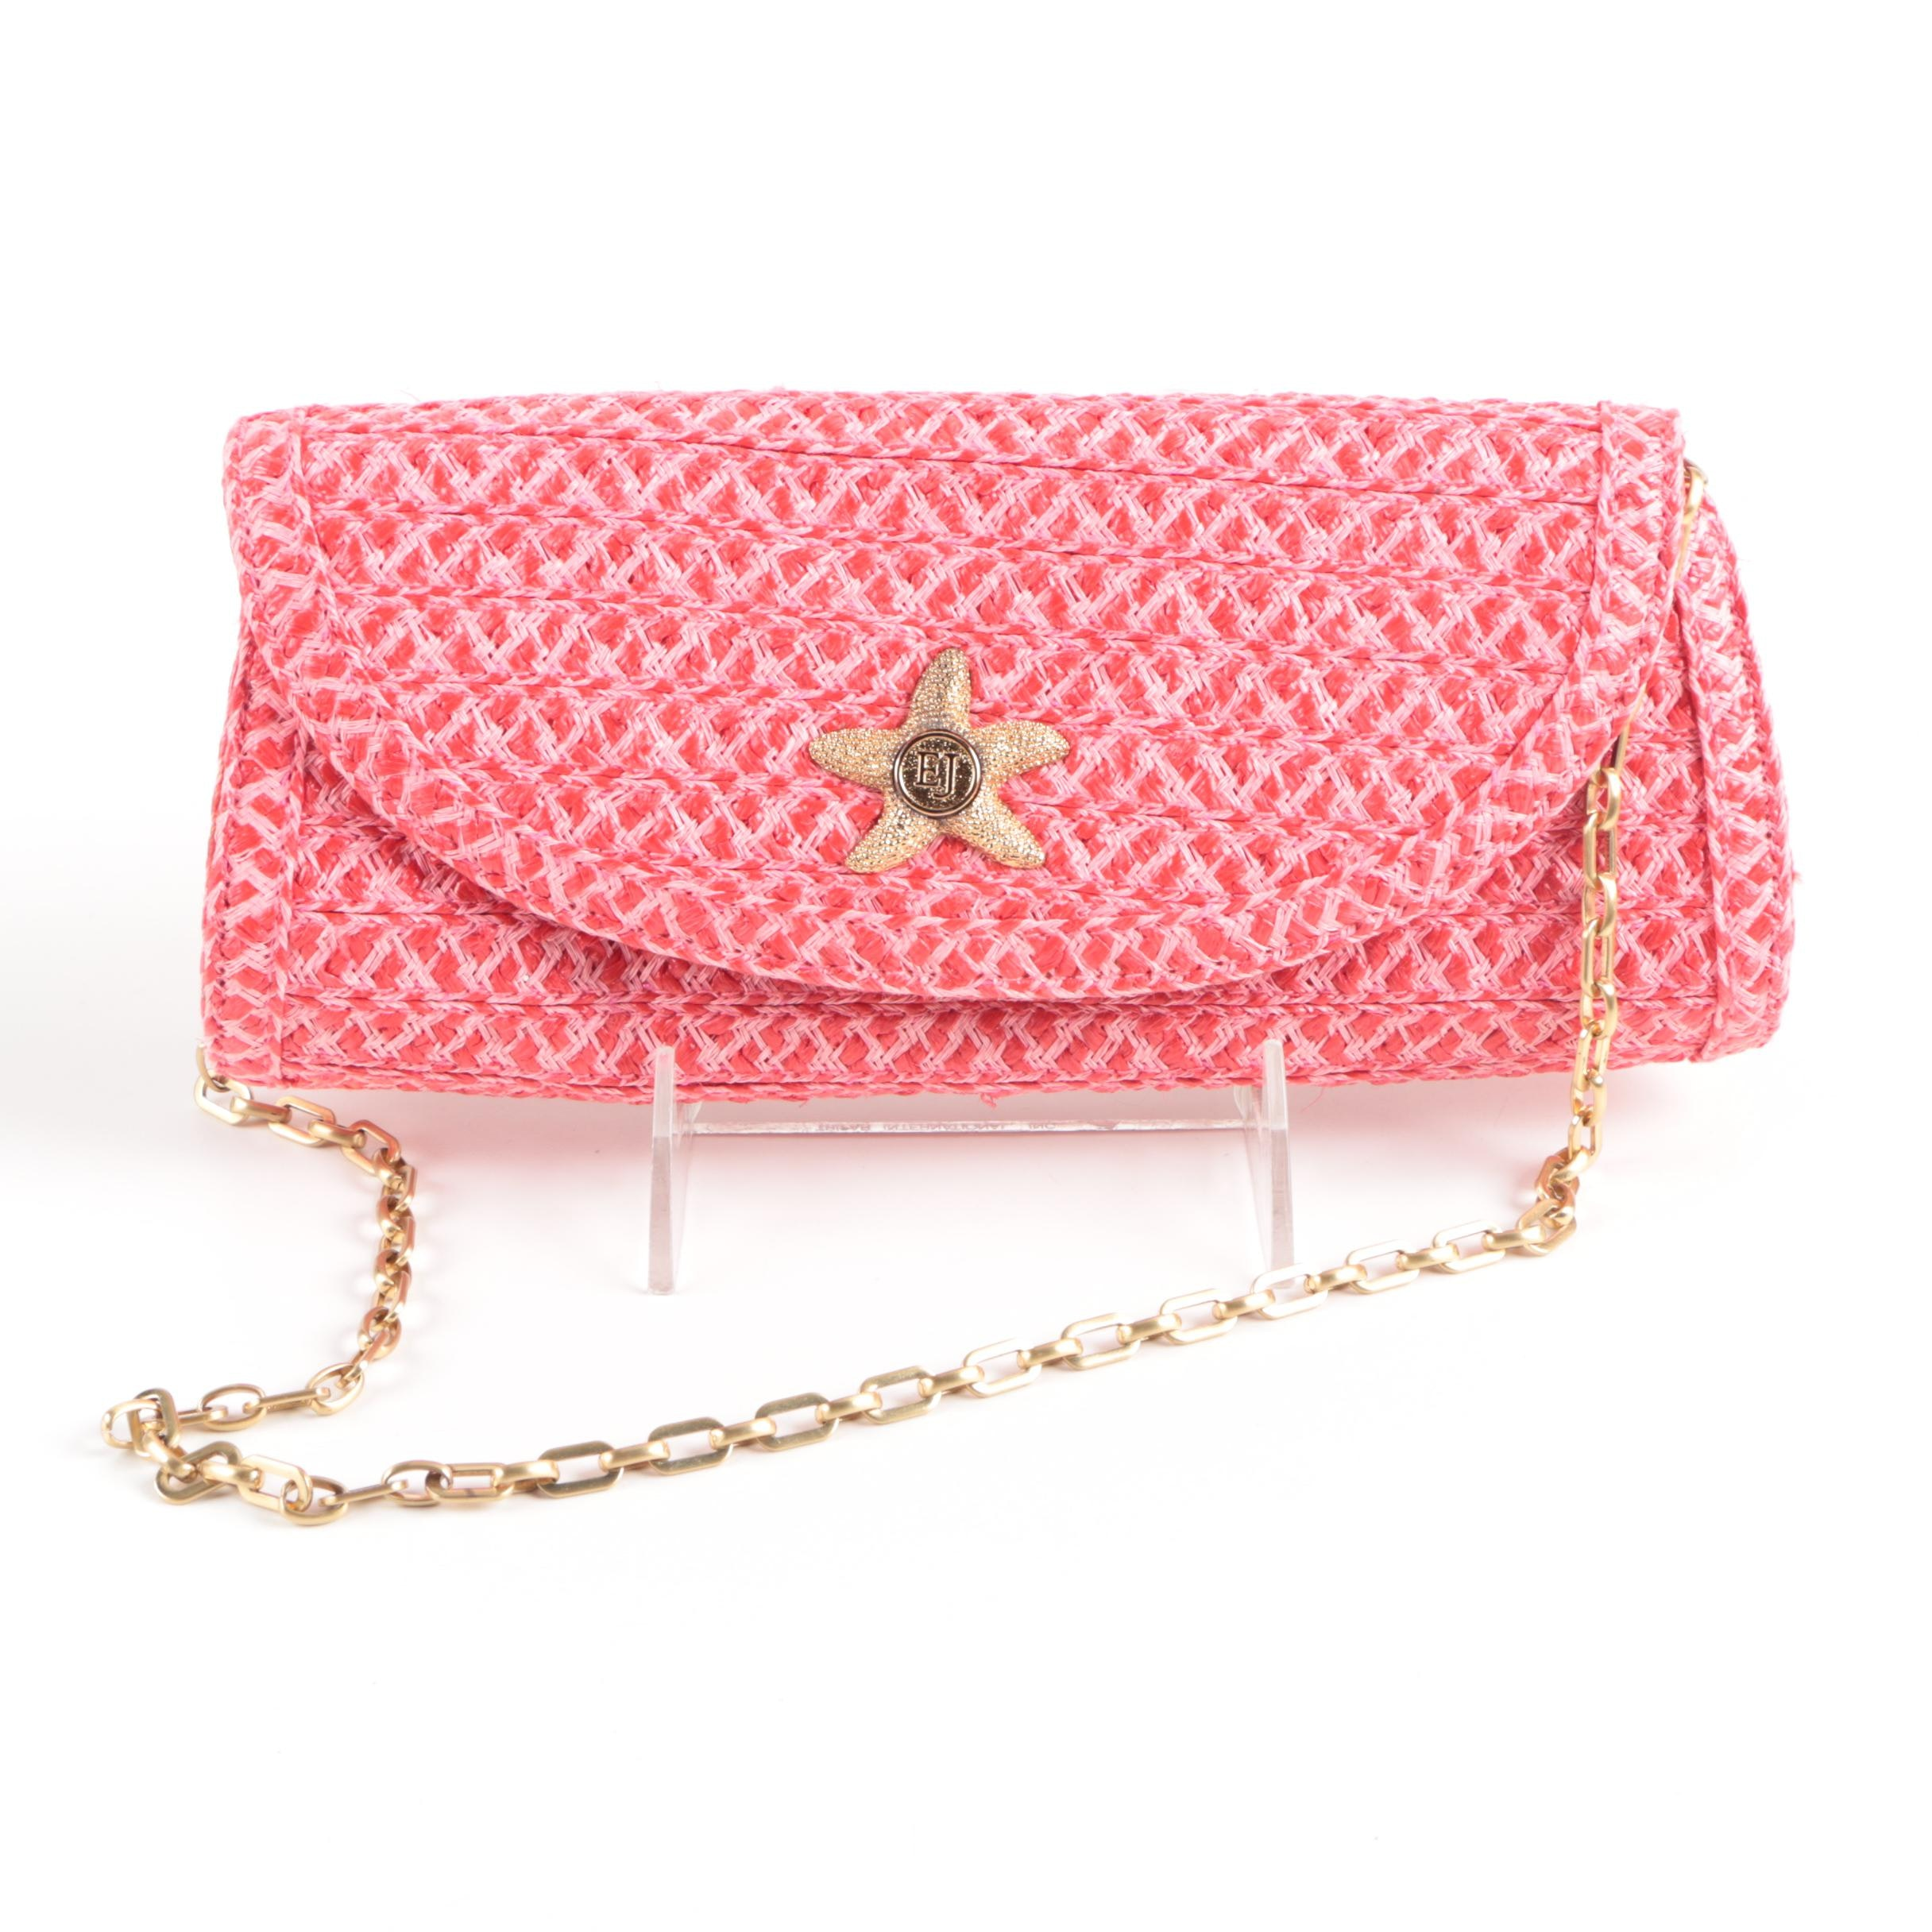 Eric Javits Woven Squishee Purse